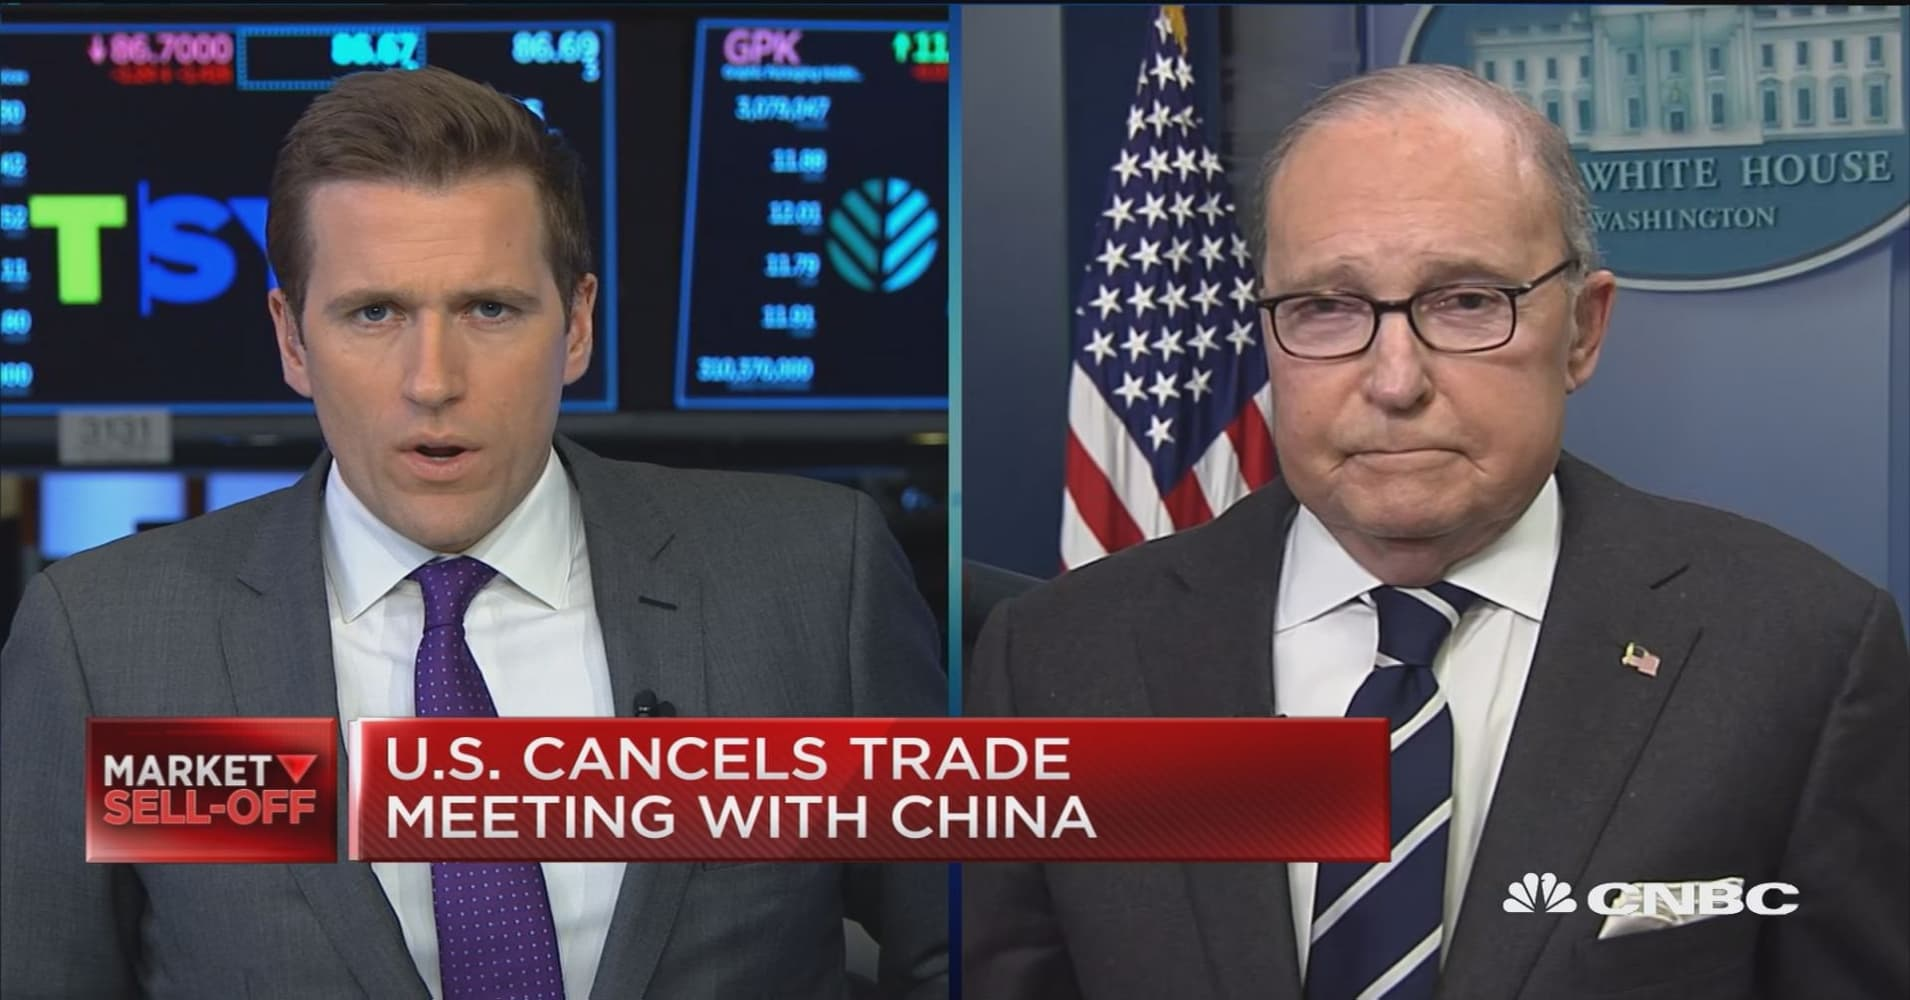 Reports of canceled meeting between the U S  and China not true, says NEC  director Kudlow